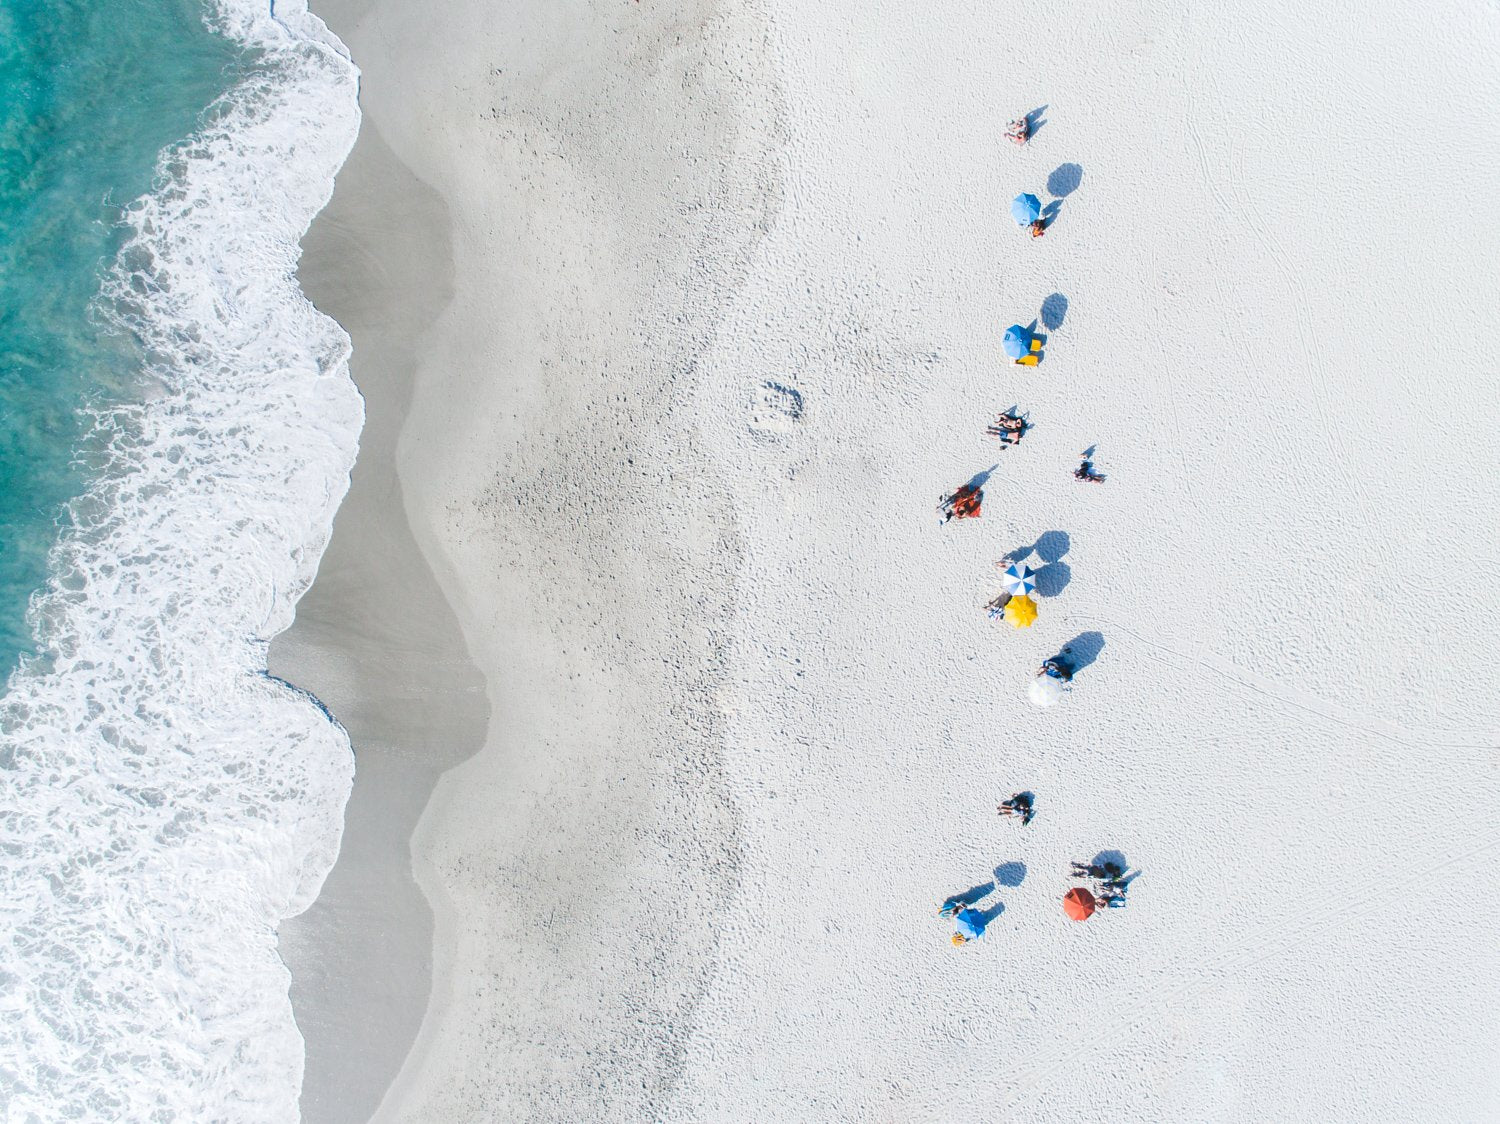 Aerial row of umbrellas on camps bay beach at waves in cape town